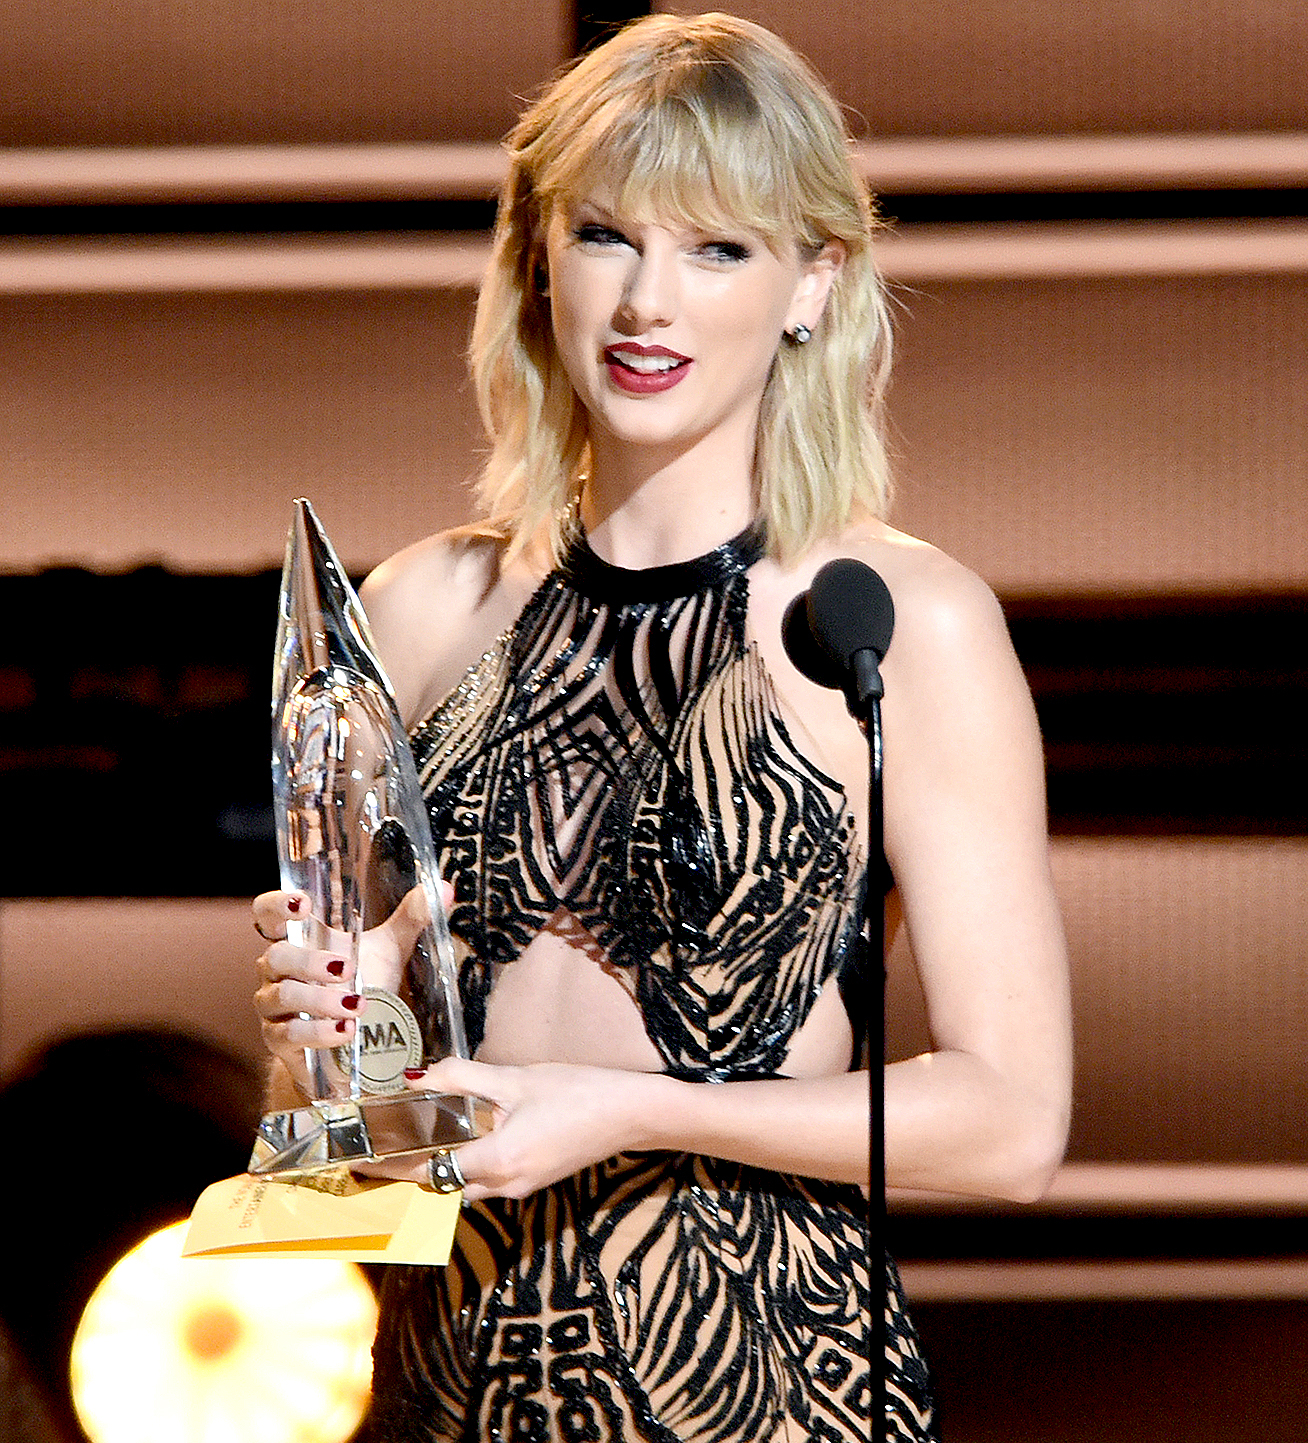 Taylor Swift presents an award on stage at the 50th Annual CMA Awards at the Bridgestone Arena on Nov. 2, 2016 in Nashville.